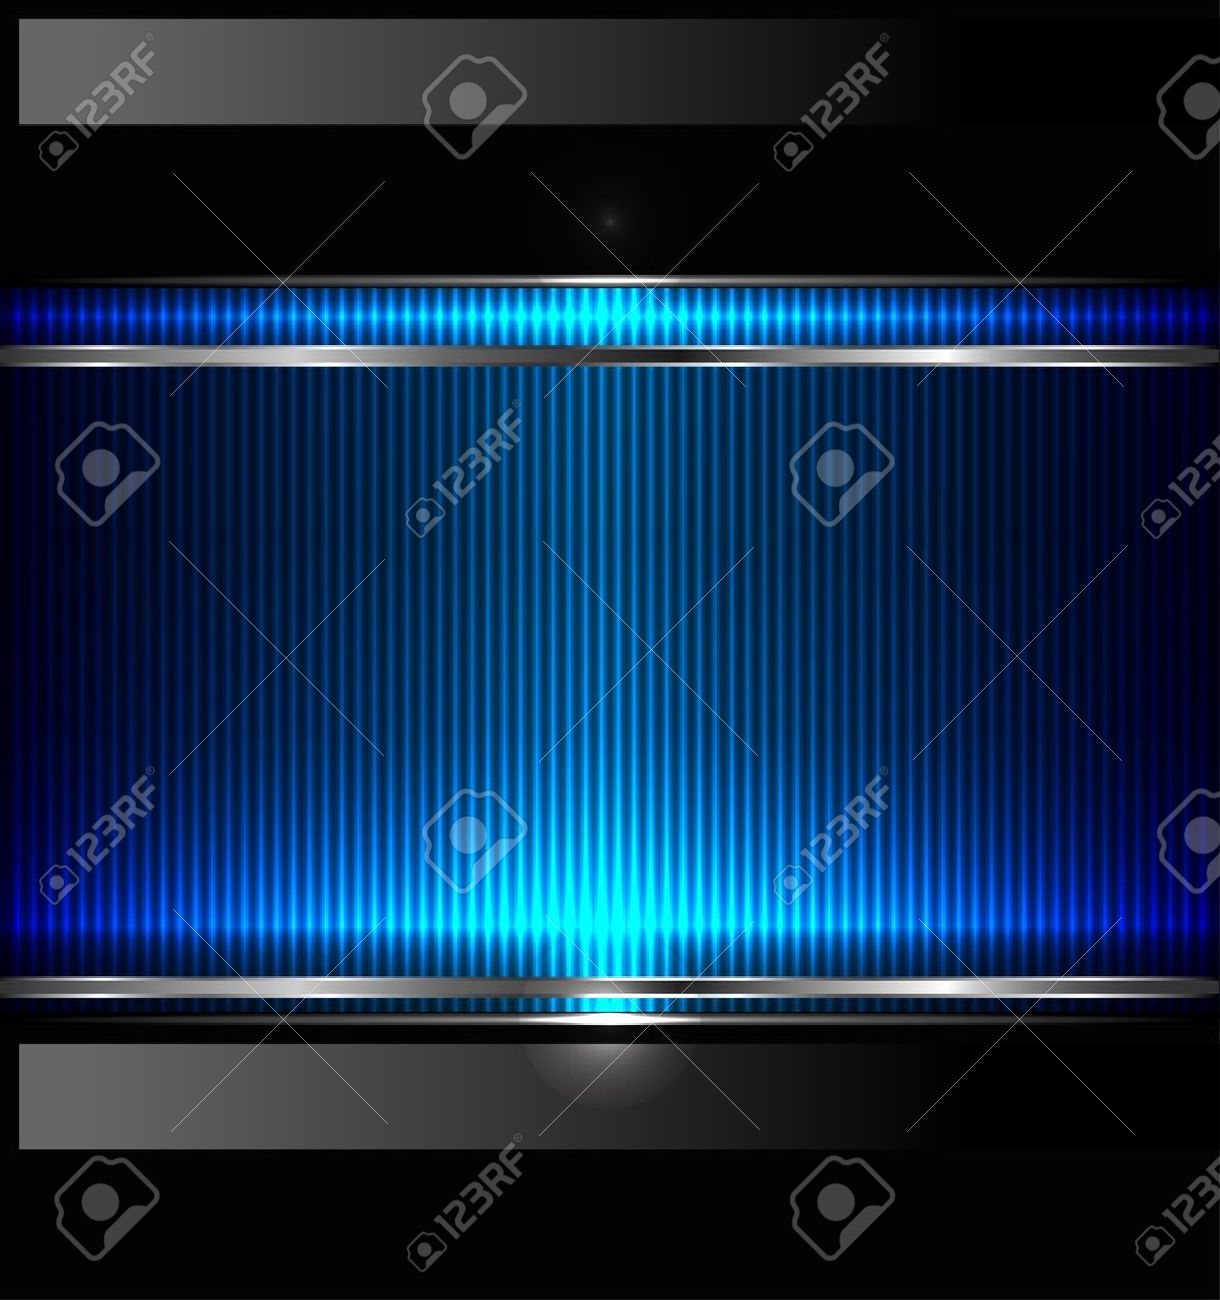 Technology background with metallic banner. Stock Vector - 11651186